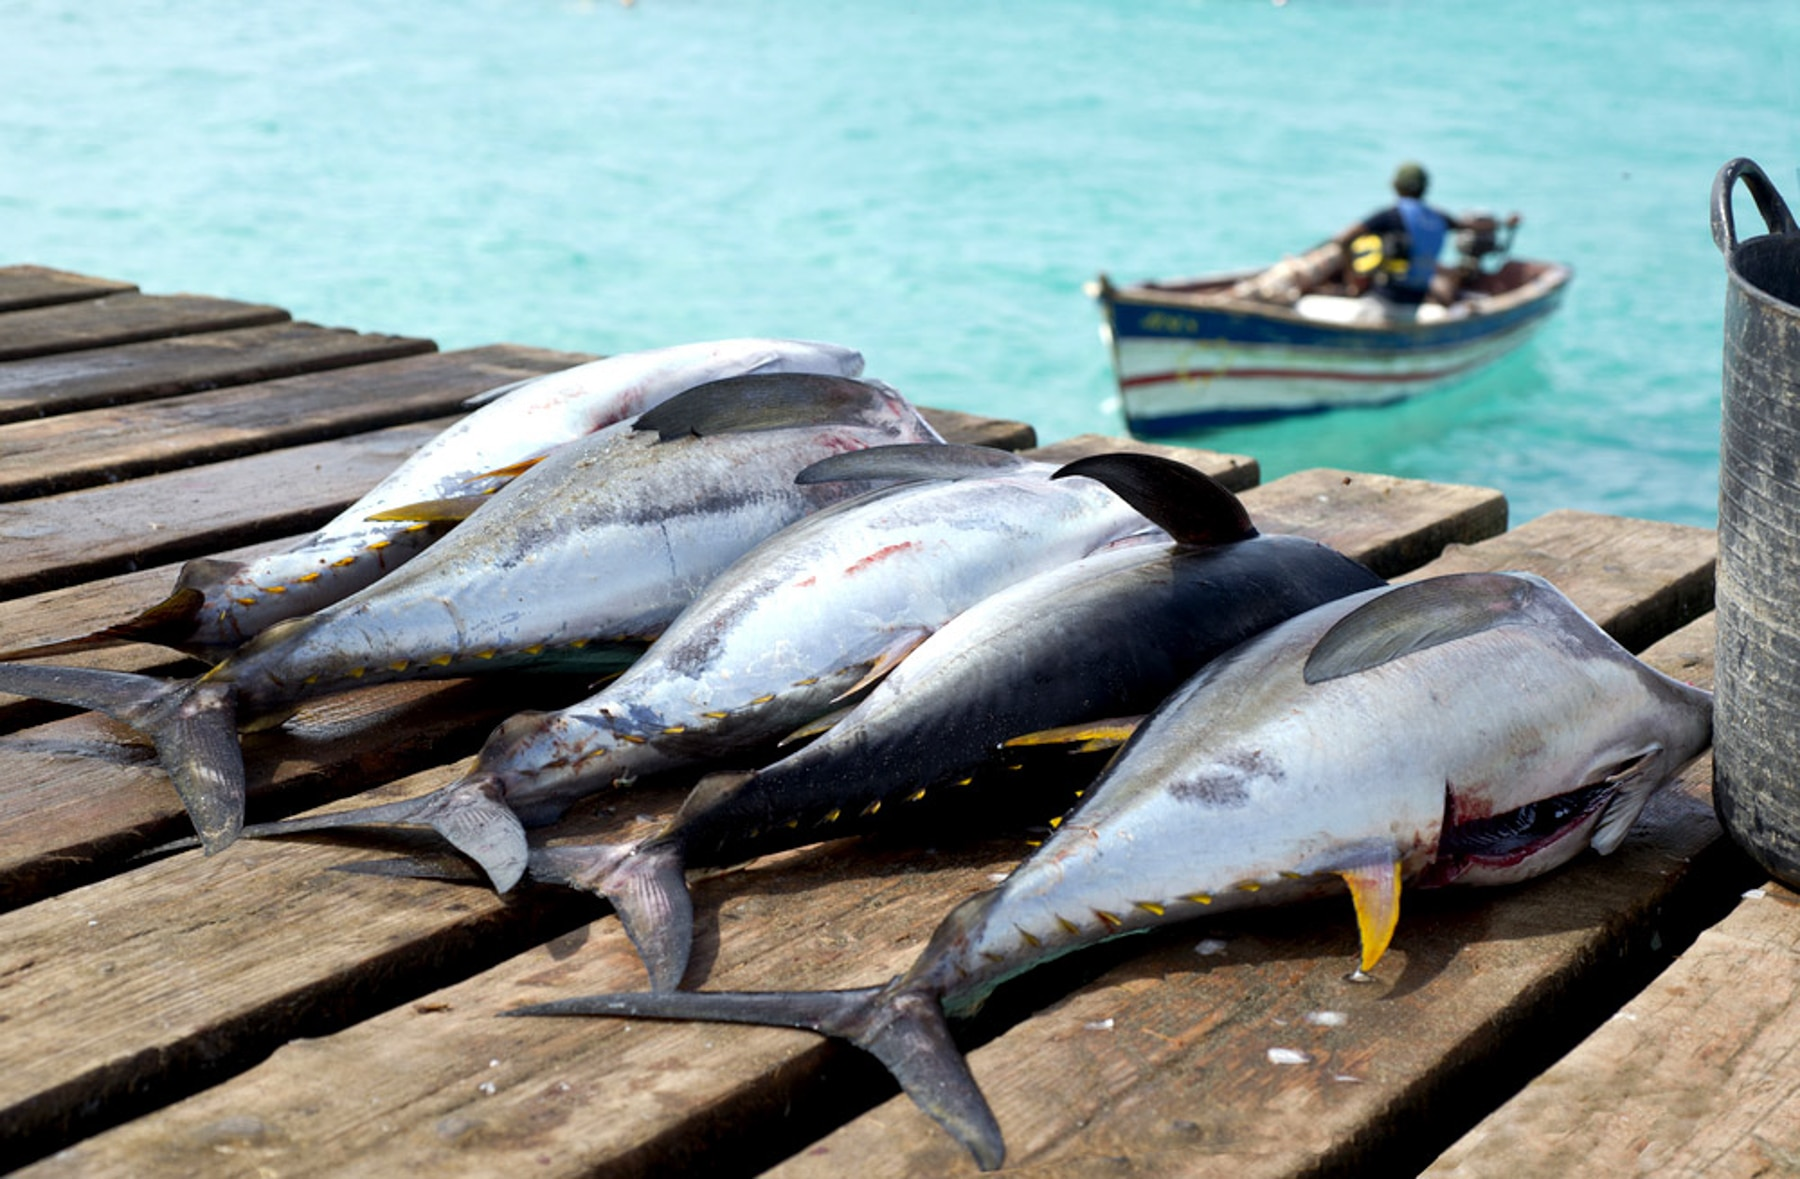 Tuna lying on dock and small boat in water (Shutterstock)